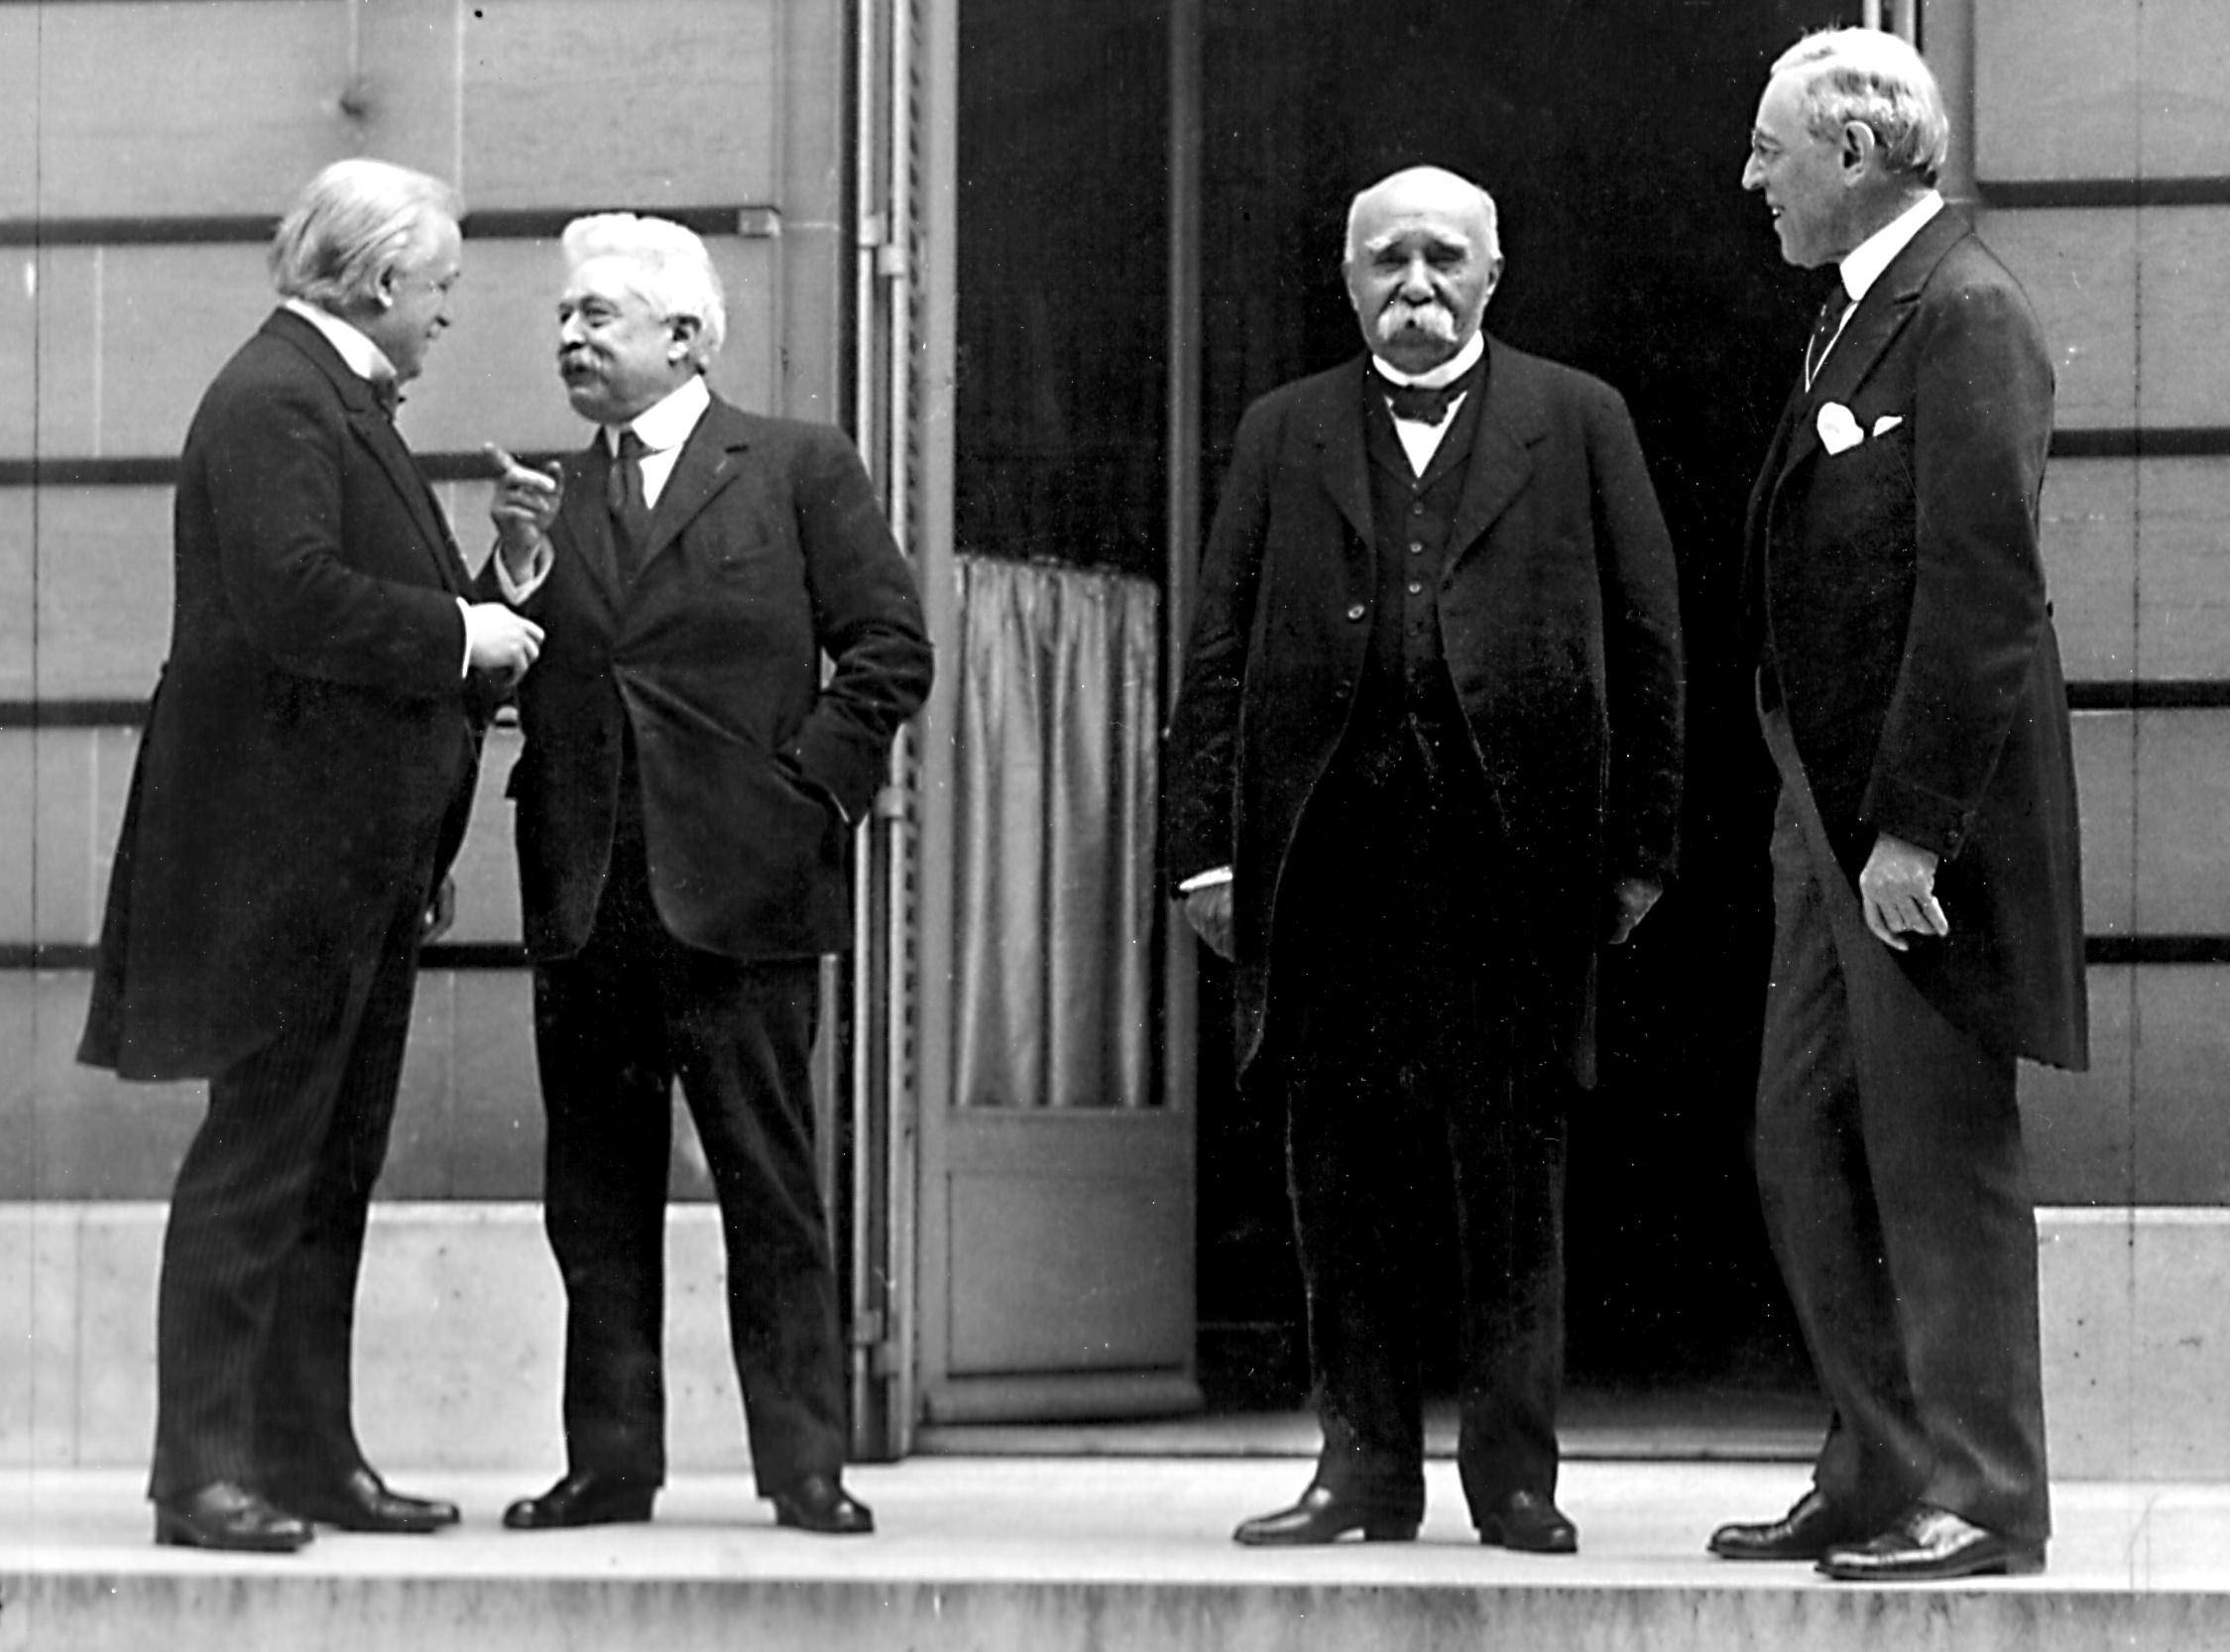 The Council of Four at the Paris Peace Conference, including British Prime Minister David Lloyd George, Italian Premier Vittorio Orlando, French Premier Georges Clemenceau, and US President Woodrow Wilson. Image courtesy Wikimedia.